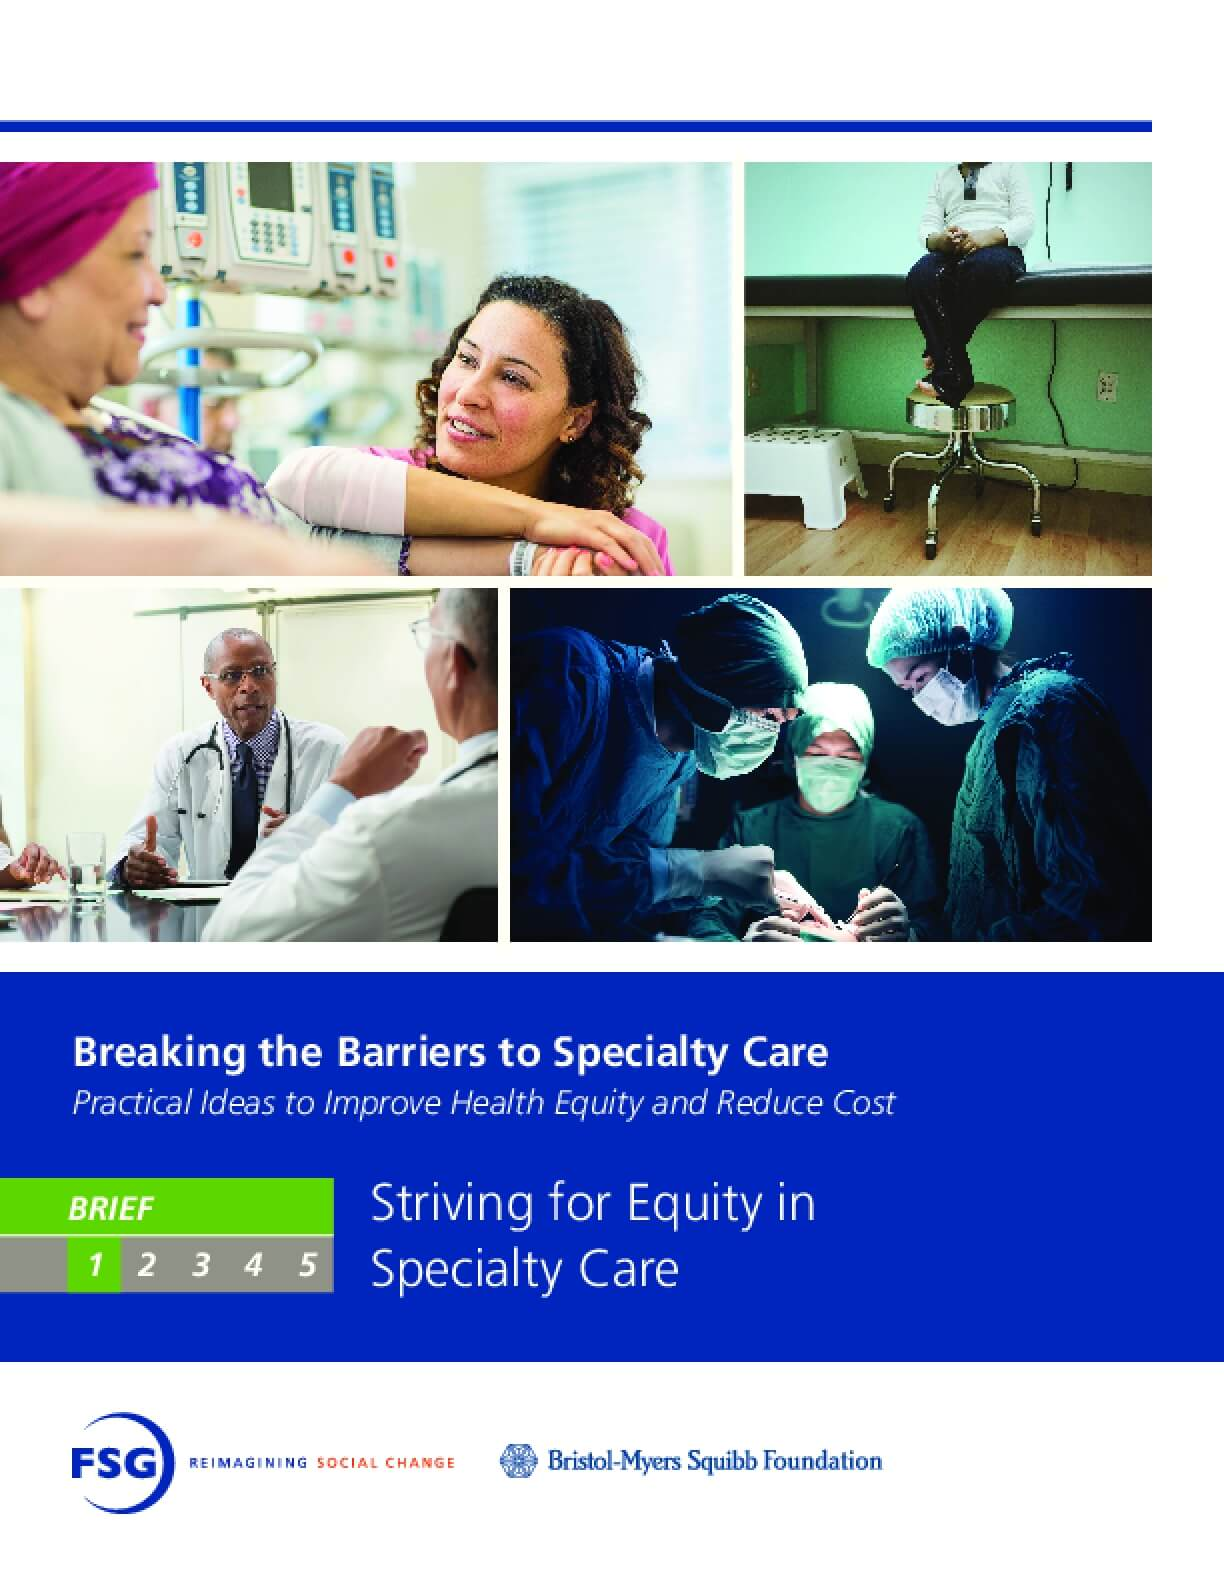 Breaking the Barriers to Specialty Care: Practical Ideas to Improve Health Equity and Reduce Cost - Striving for Equity in Specialty Care Full Report